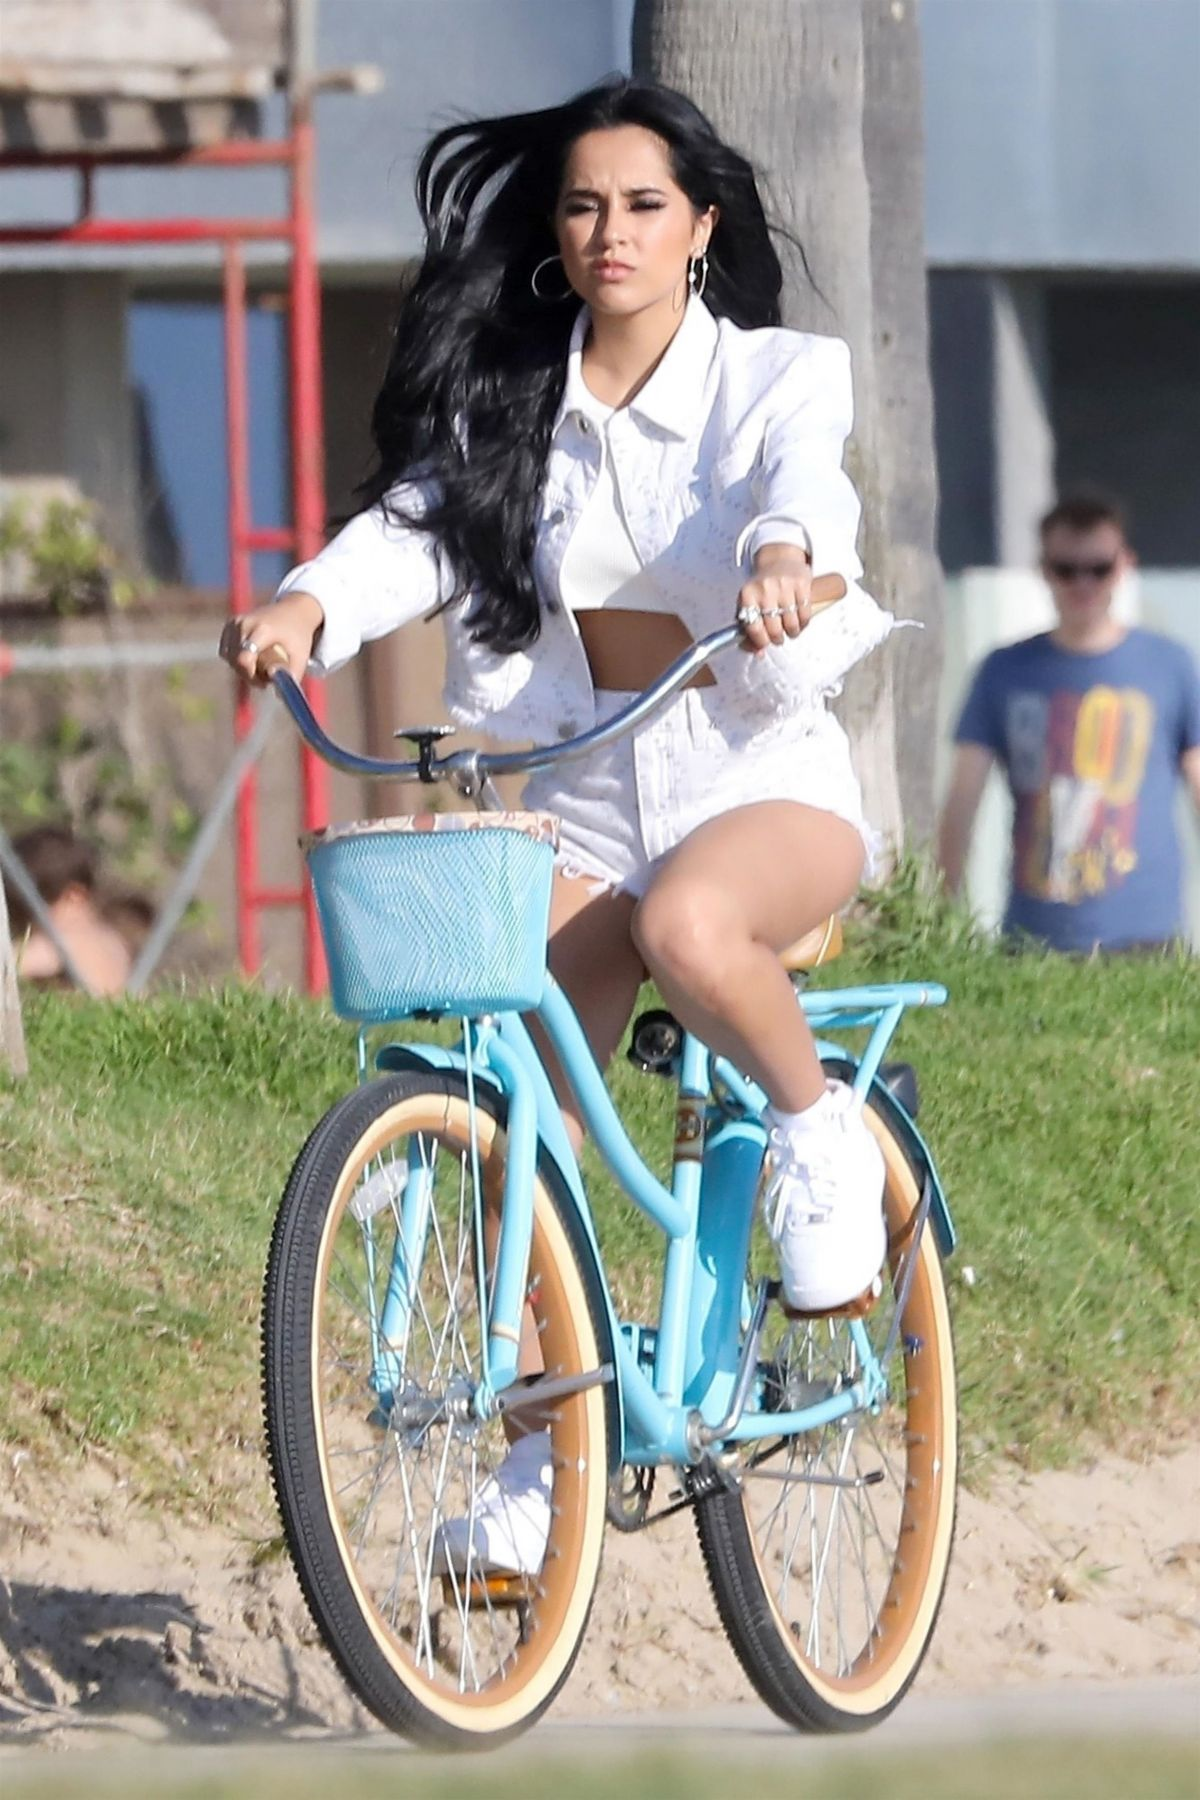 Becky G Filming a bike ride scene for an upcoming music video in